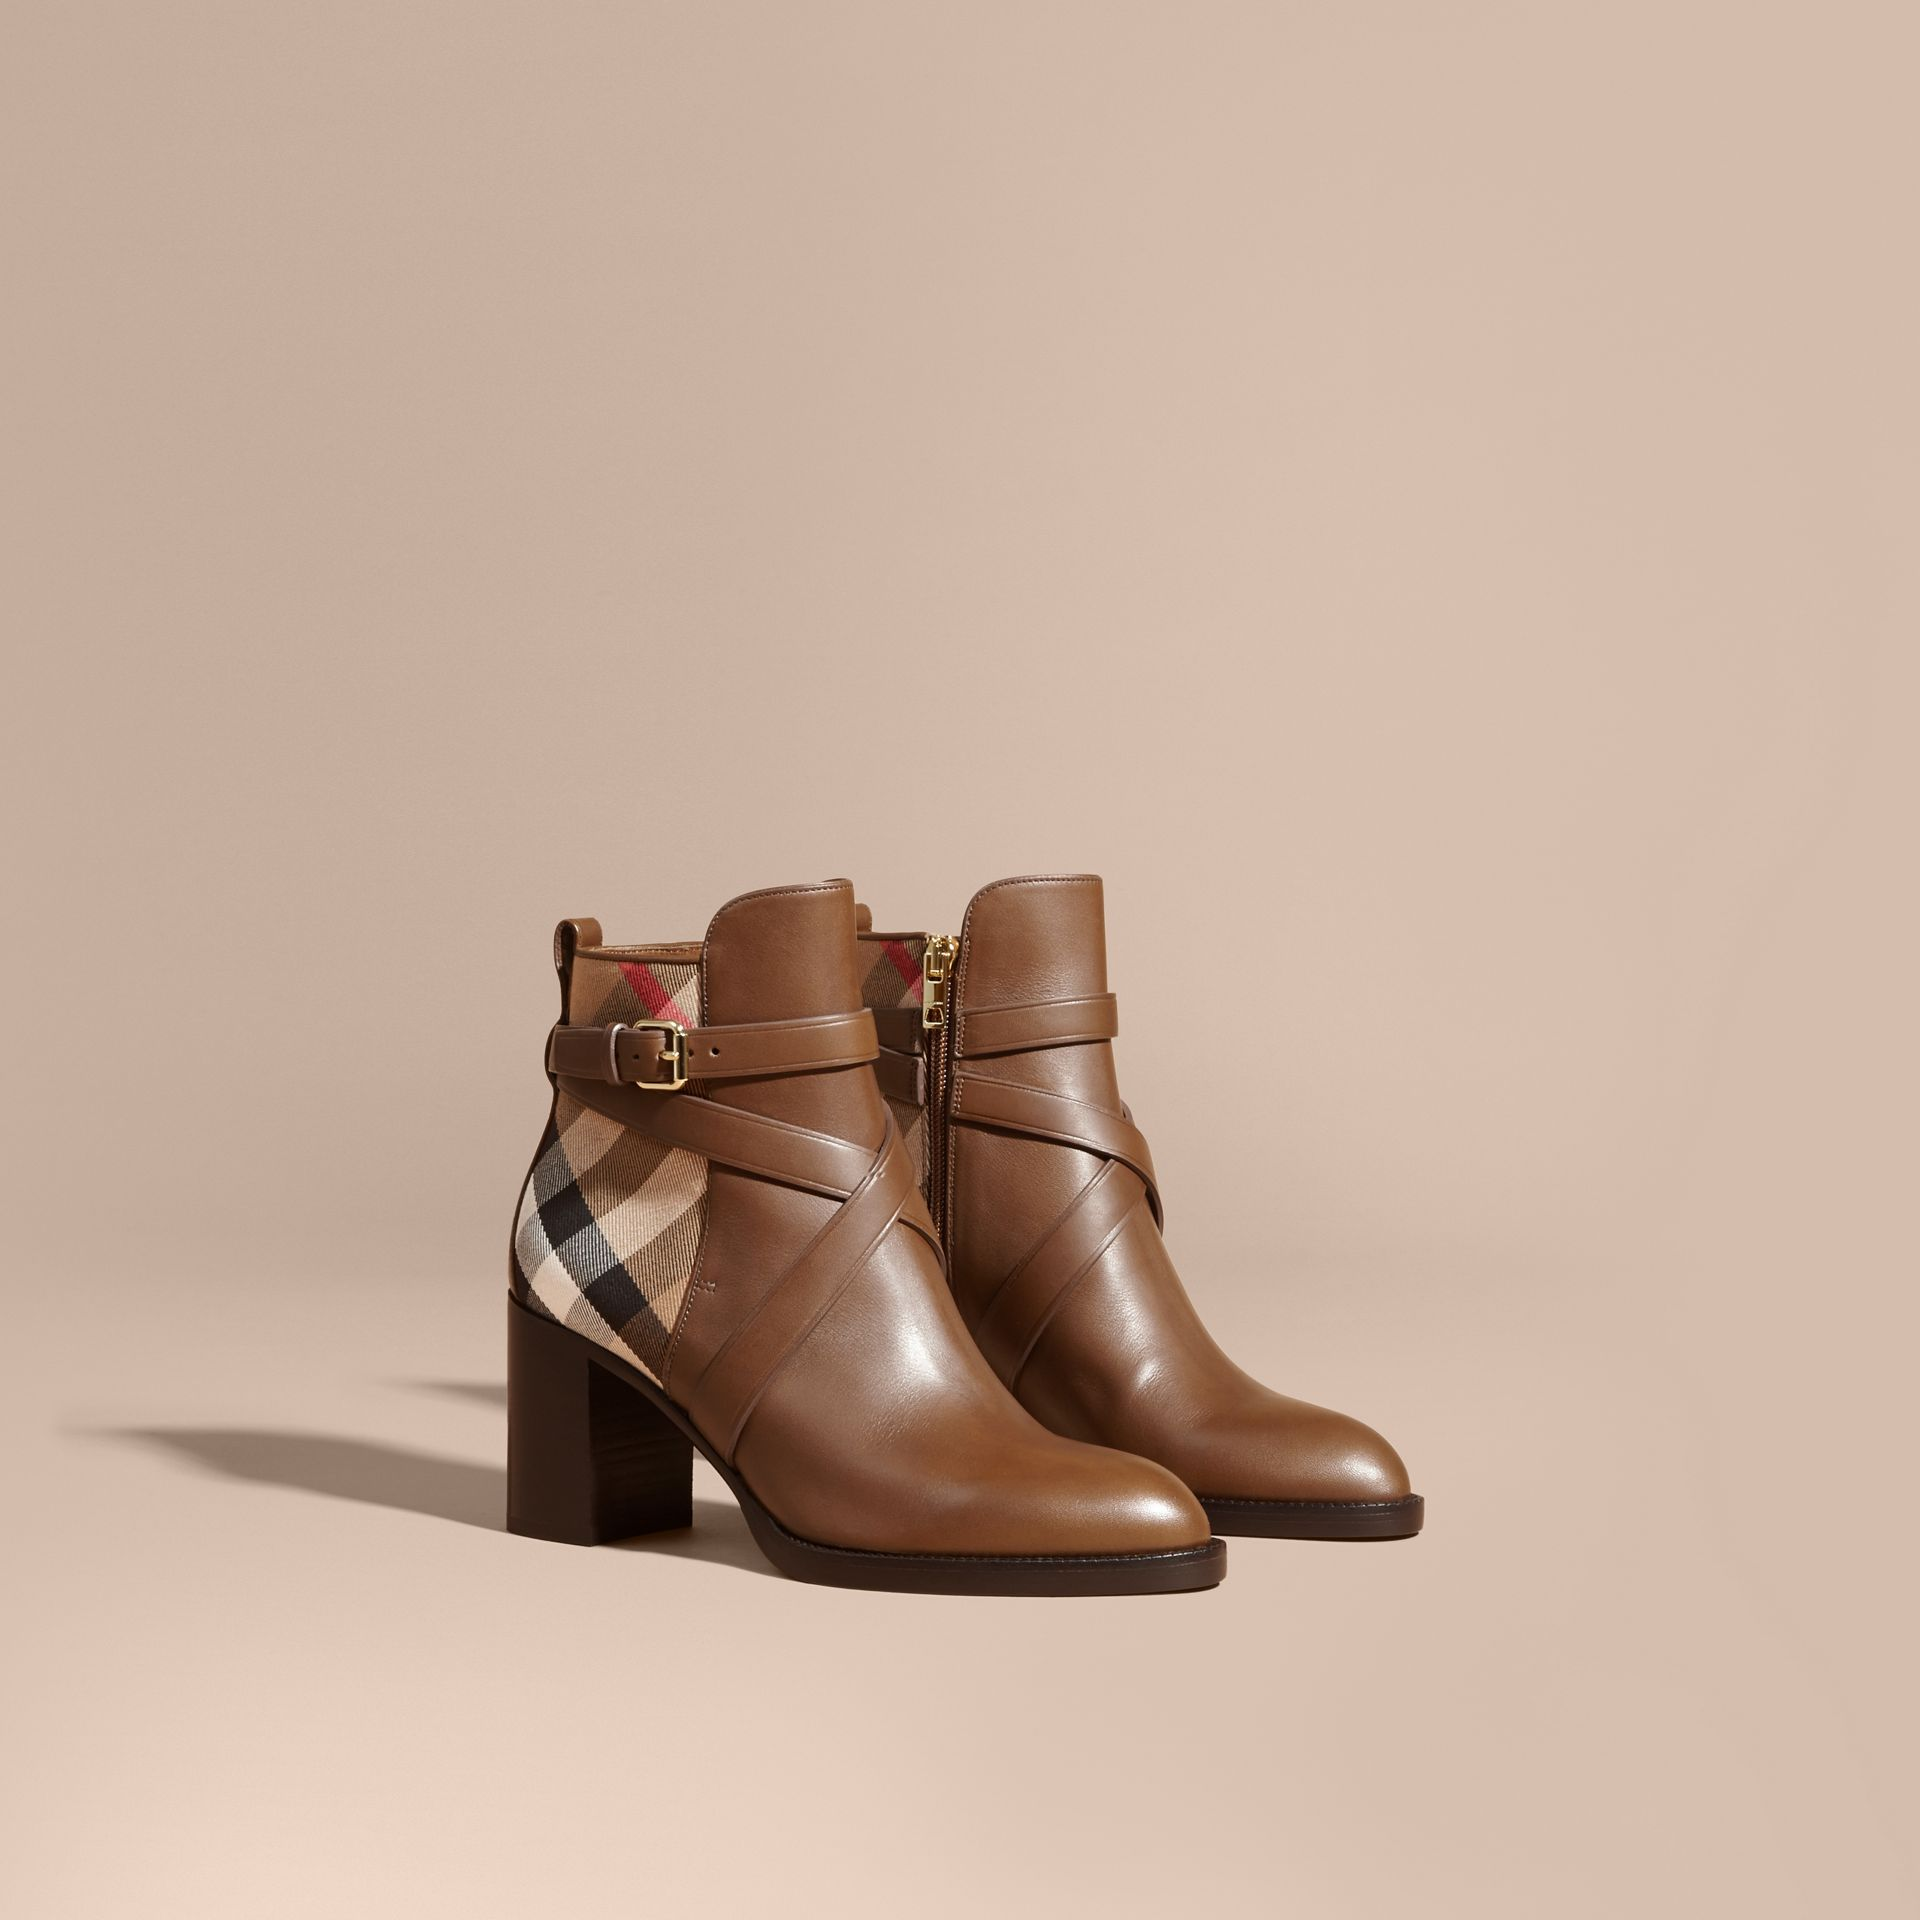 Bright camel House Check and Leather Ankle Boots Bright Camel - gallery image 1